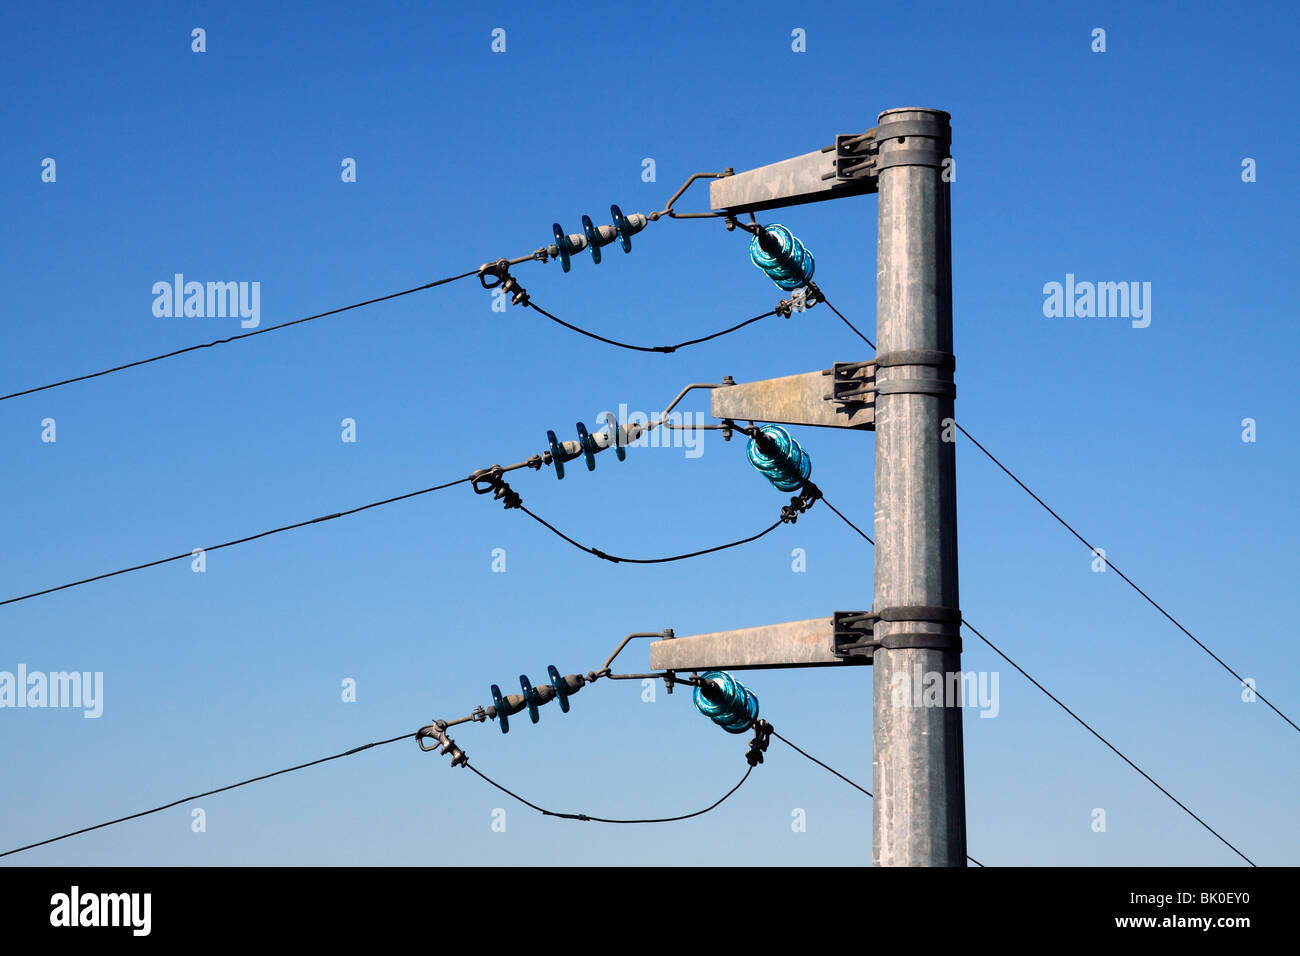 Electric cables and pole - Stock Image